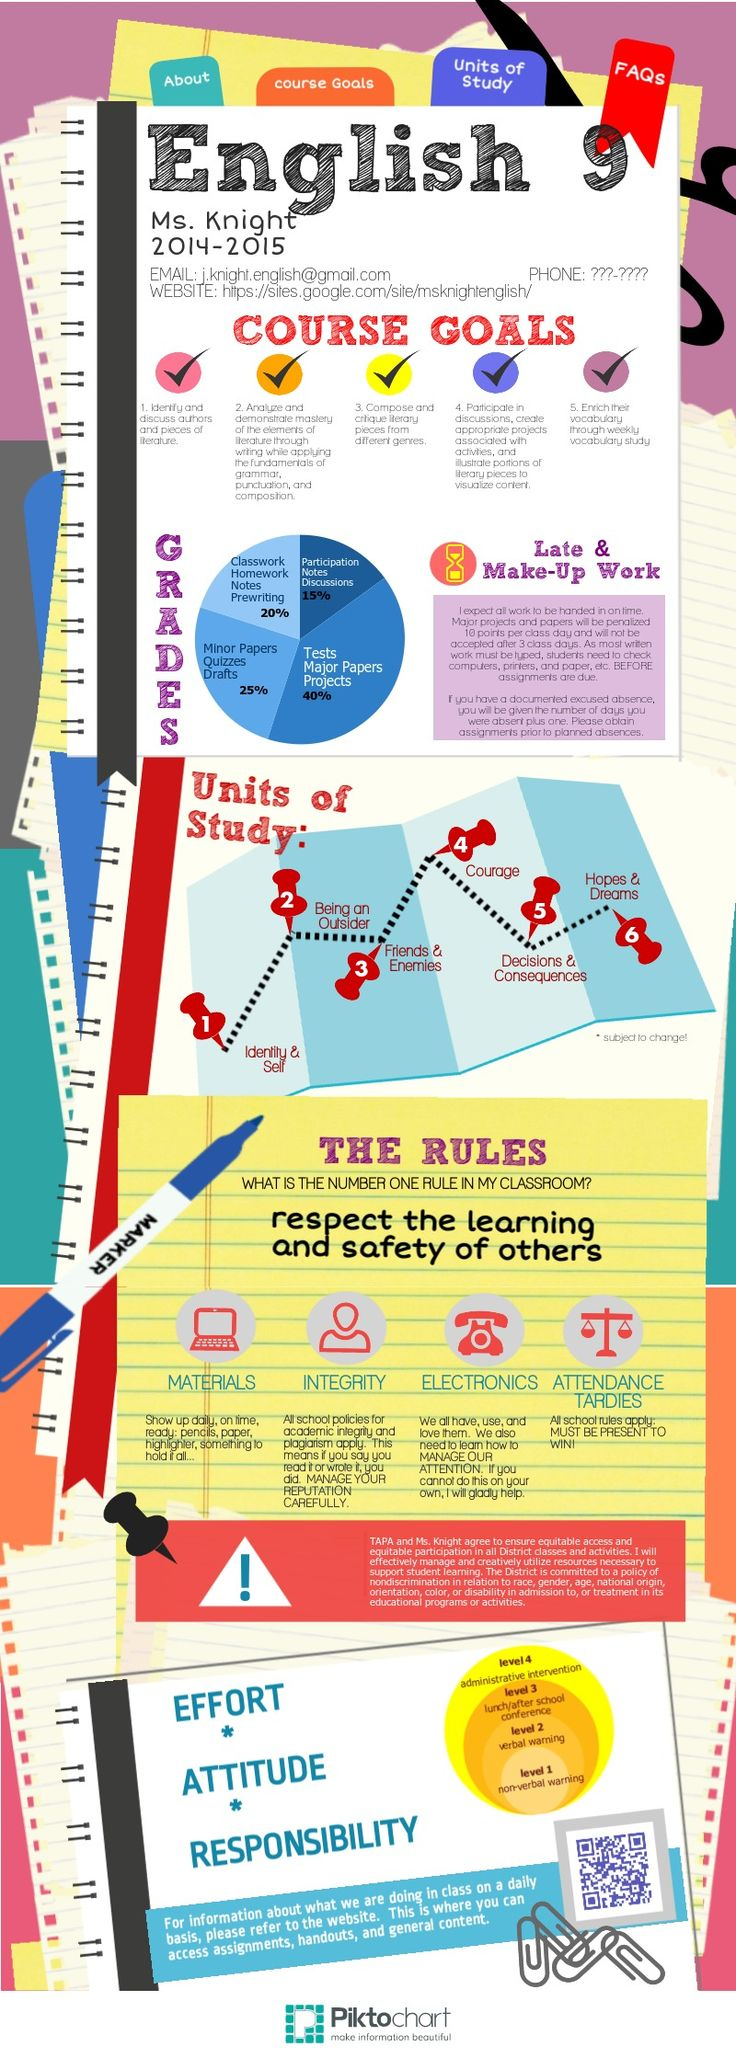 english 9 syllabus, version 2 | @Piktochart Infographic